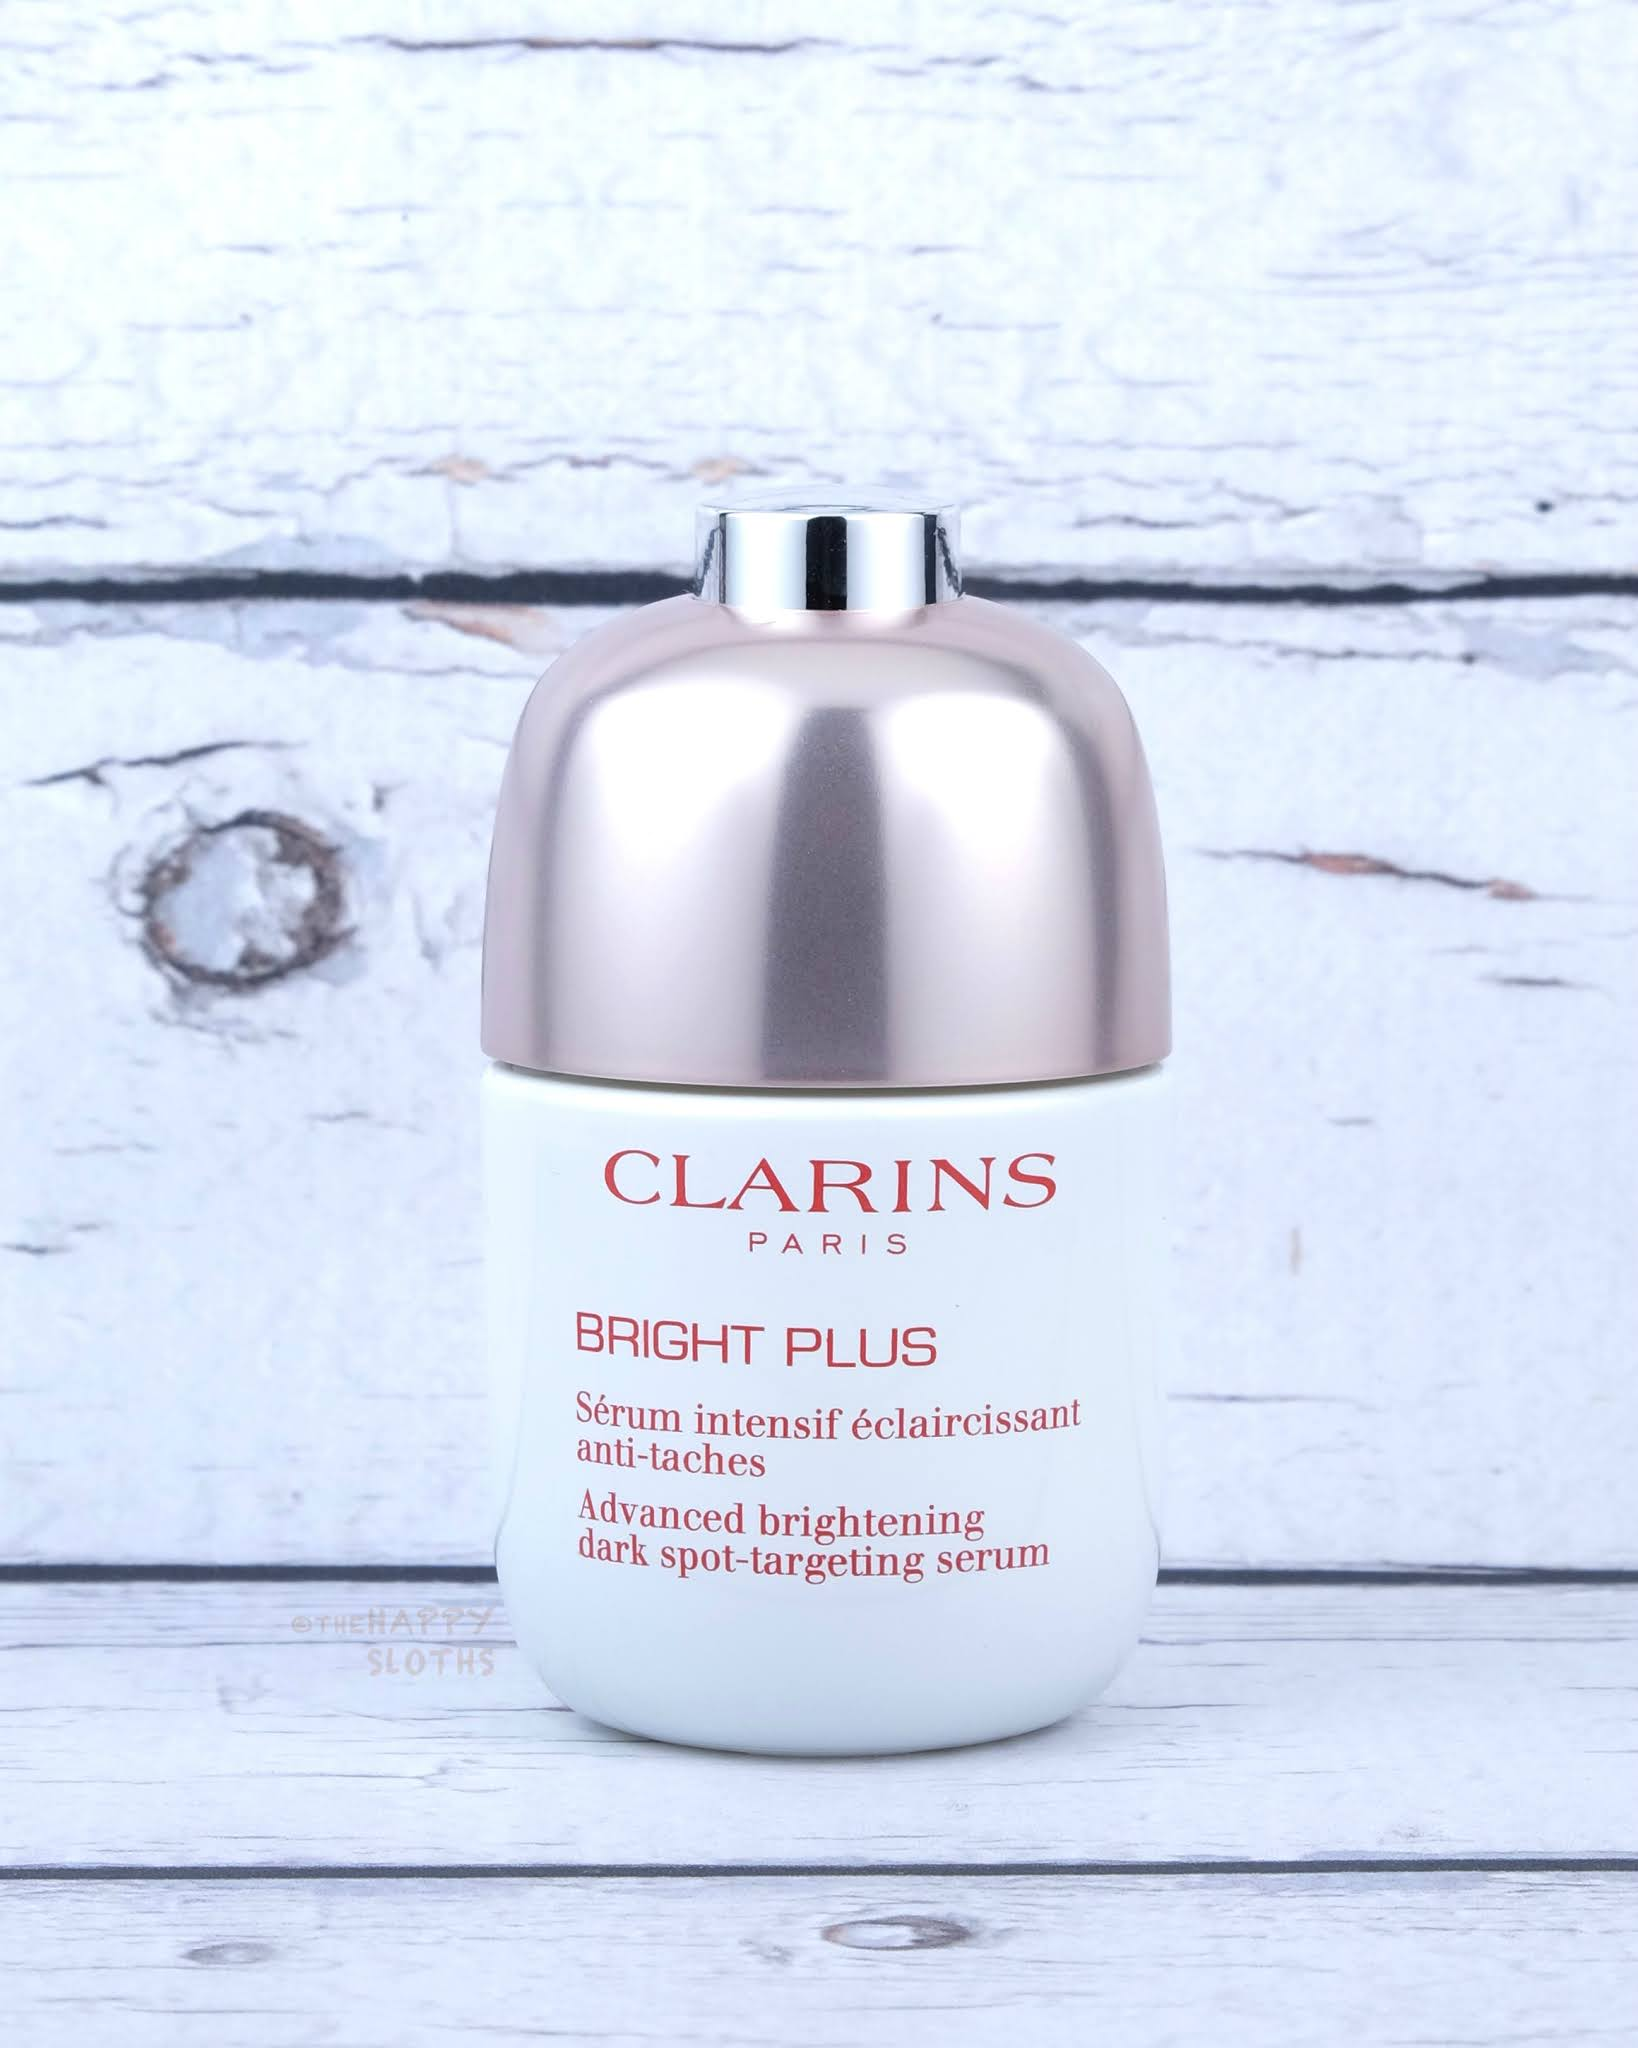 Clarins | Bright Plus Advanced Brightening Dark Spot-Targeting Serum: Review